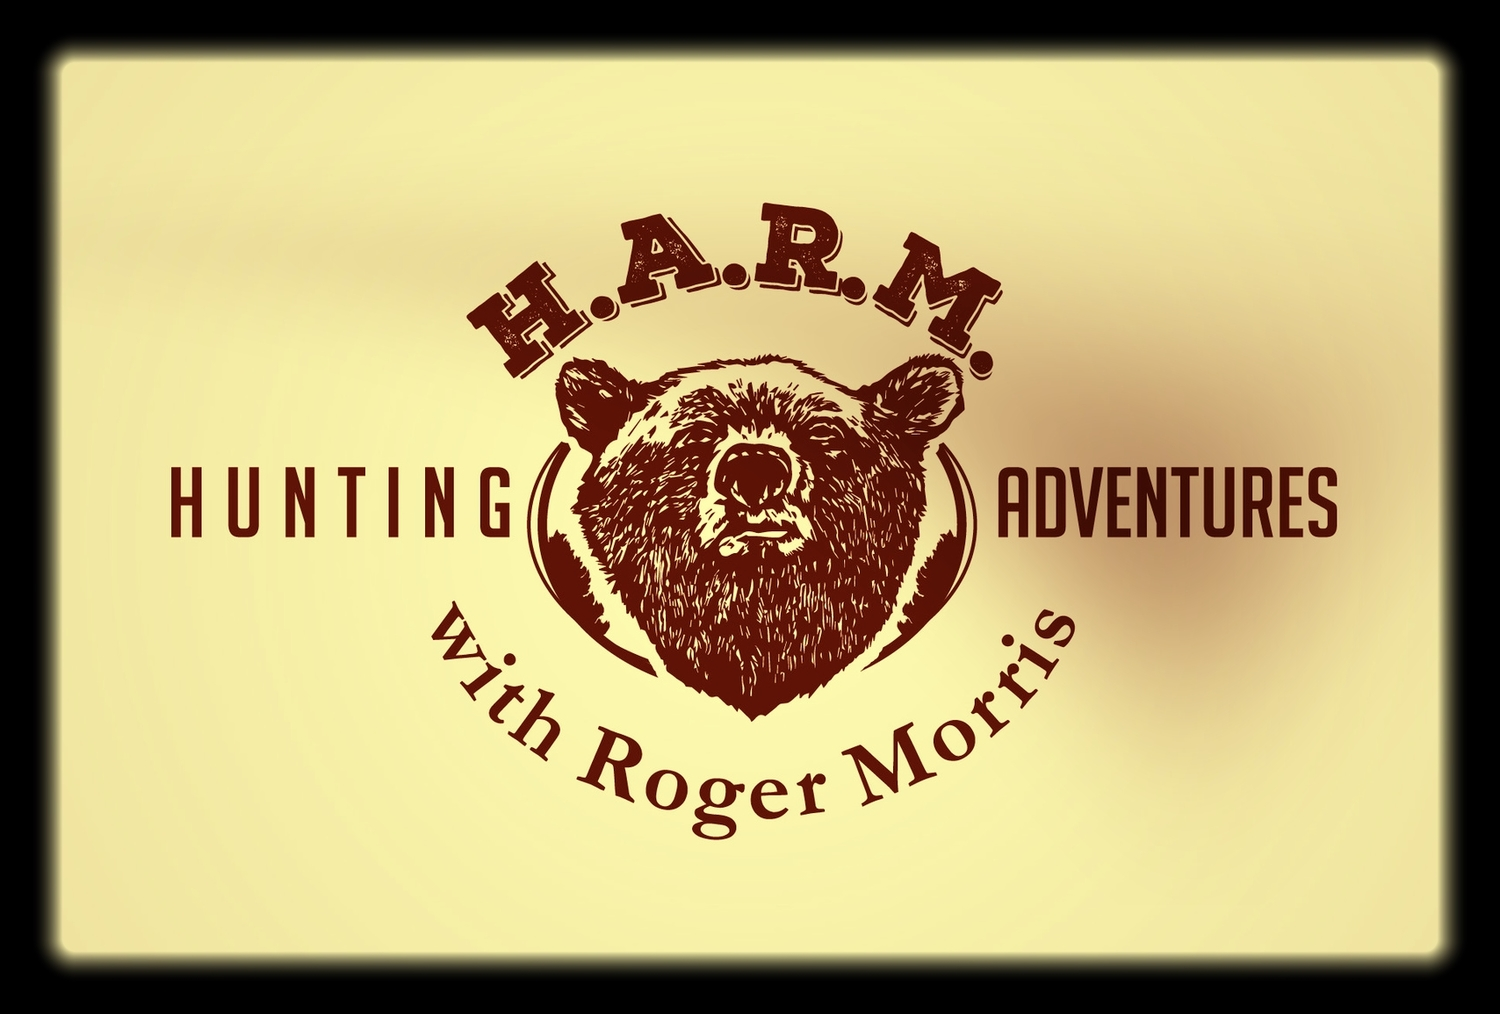 Hunting Adventures with Roger Morris